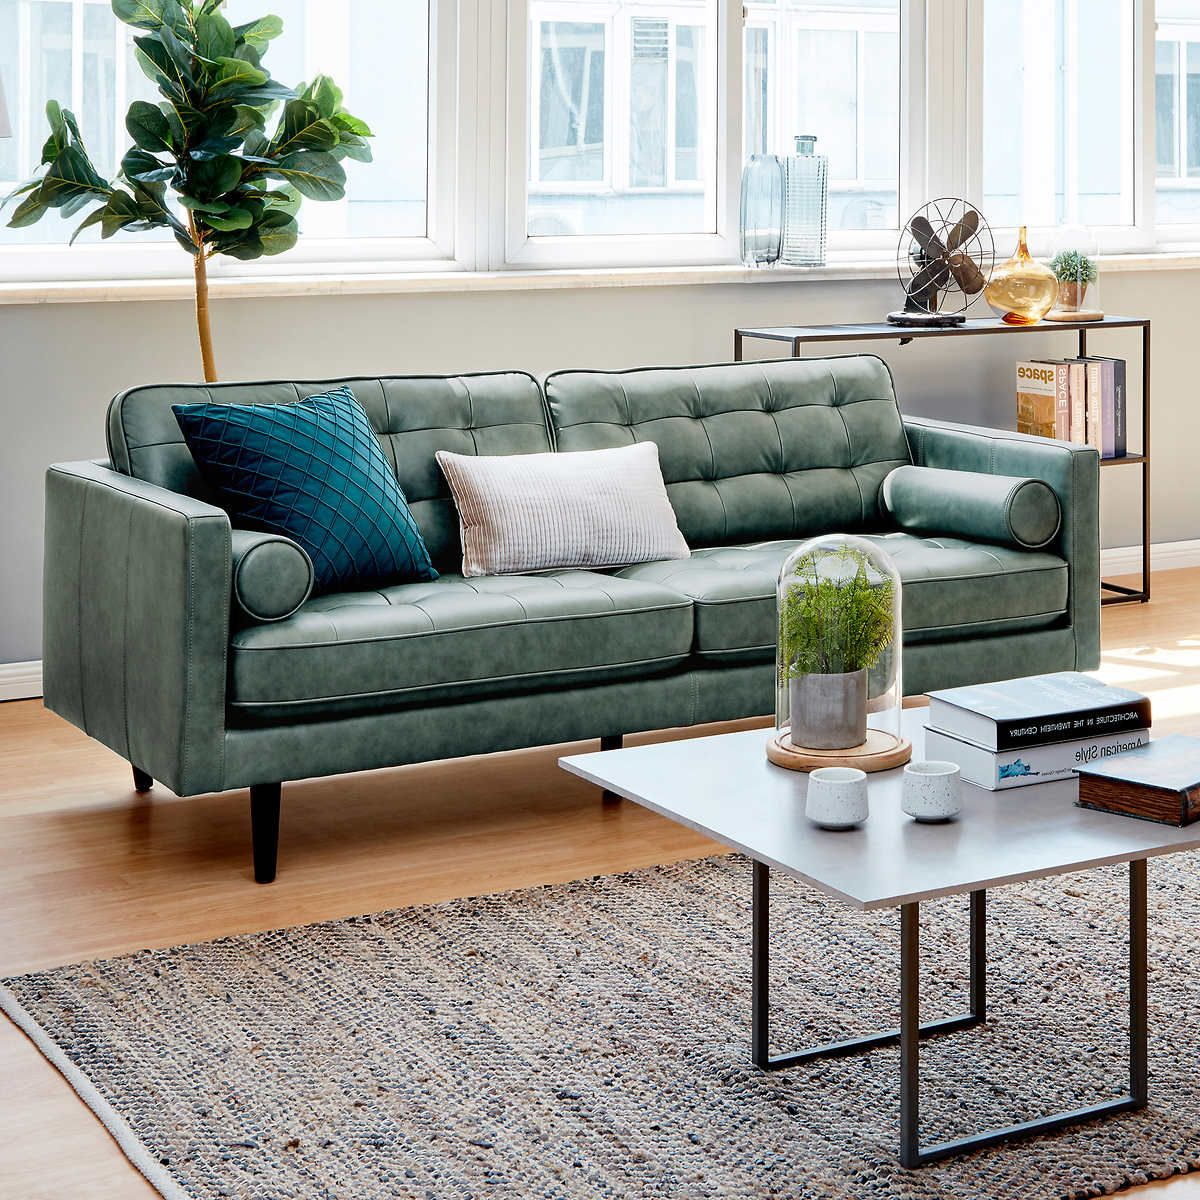 Green 1 In 2021 Leather Sofa Living Room Leather Sofa Living Room Leather [ 1200 x 1200 Pixel ]